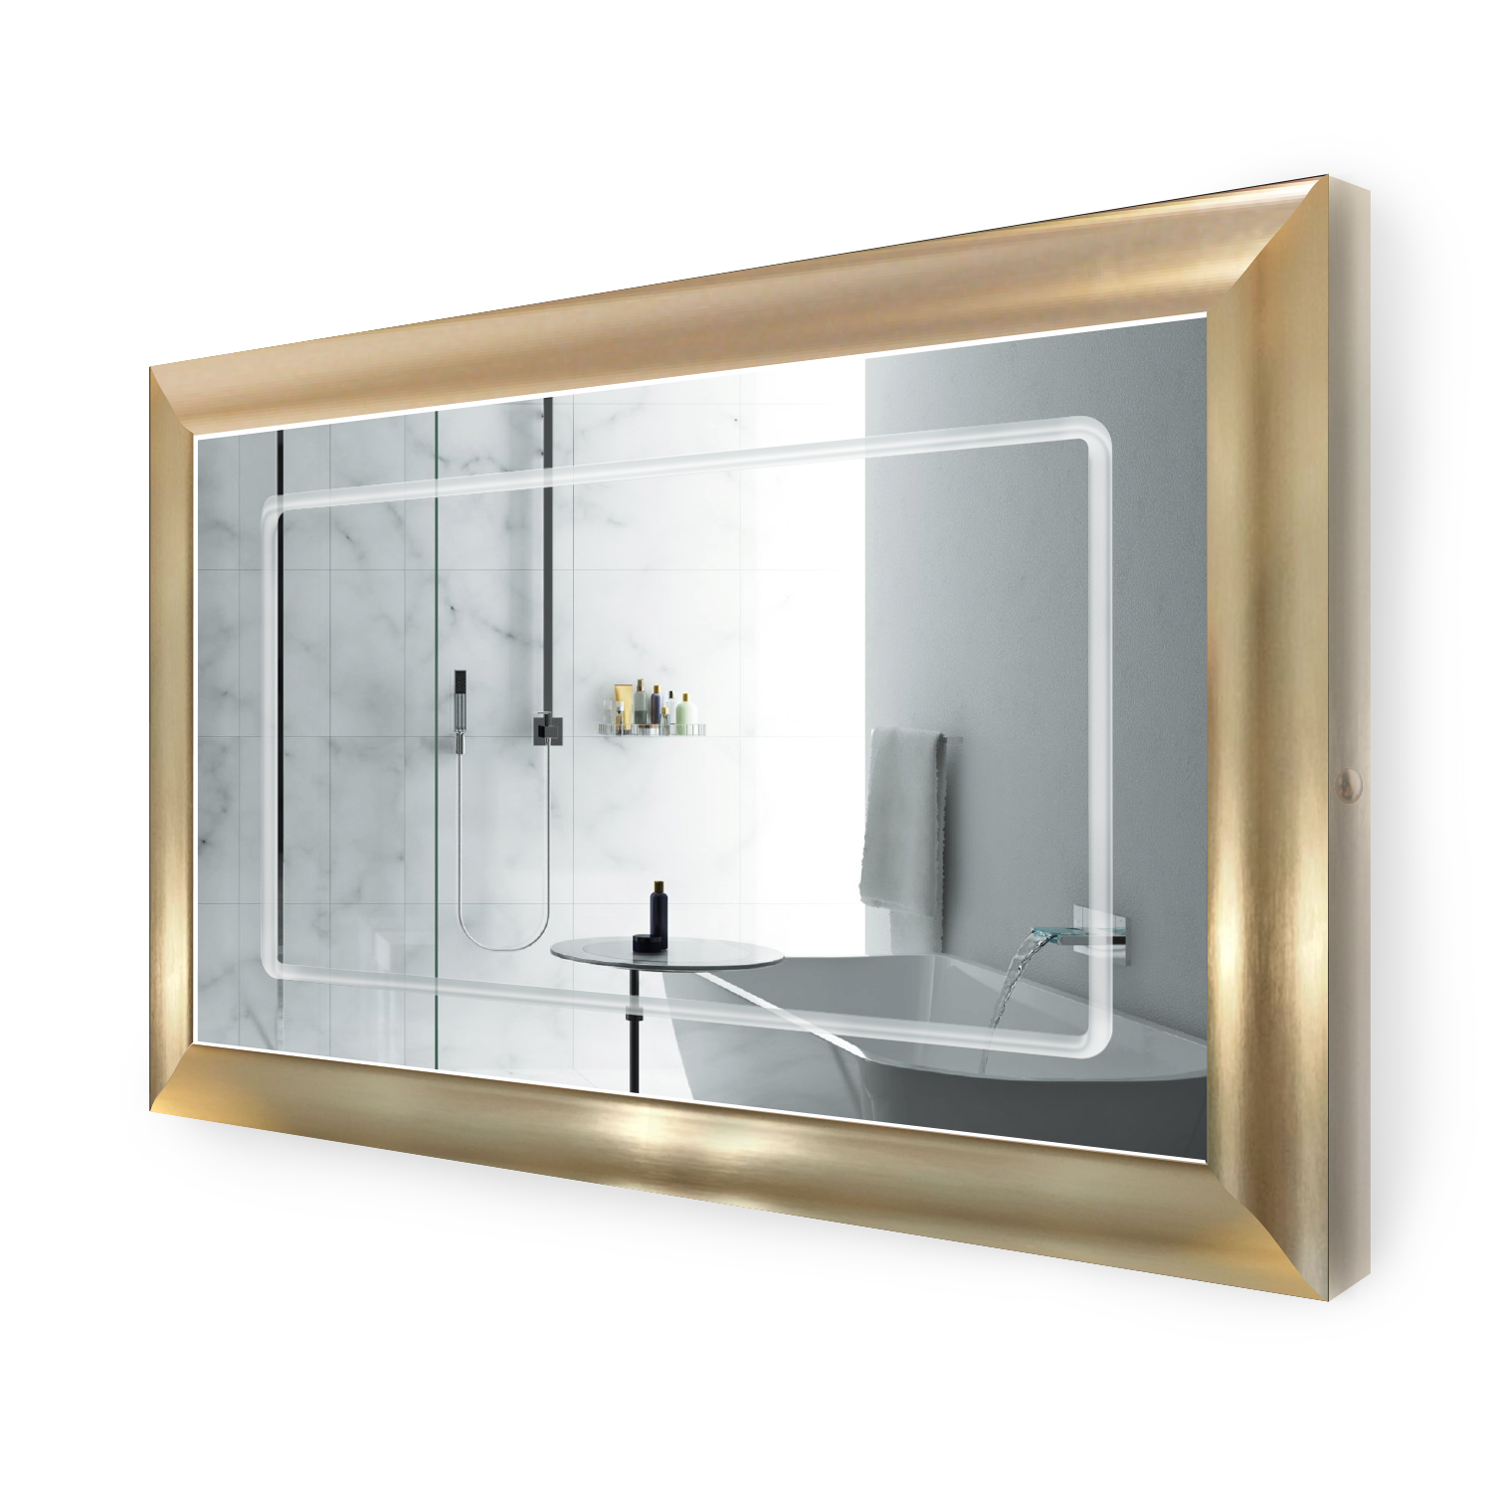 large illuminated bathroom mirror led lighted 48 inch x 30 inch bathroom gold frame mirror 19095